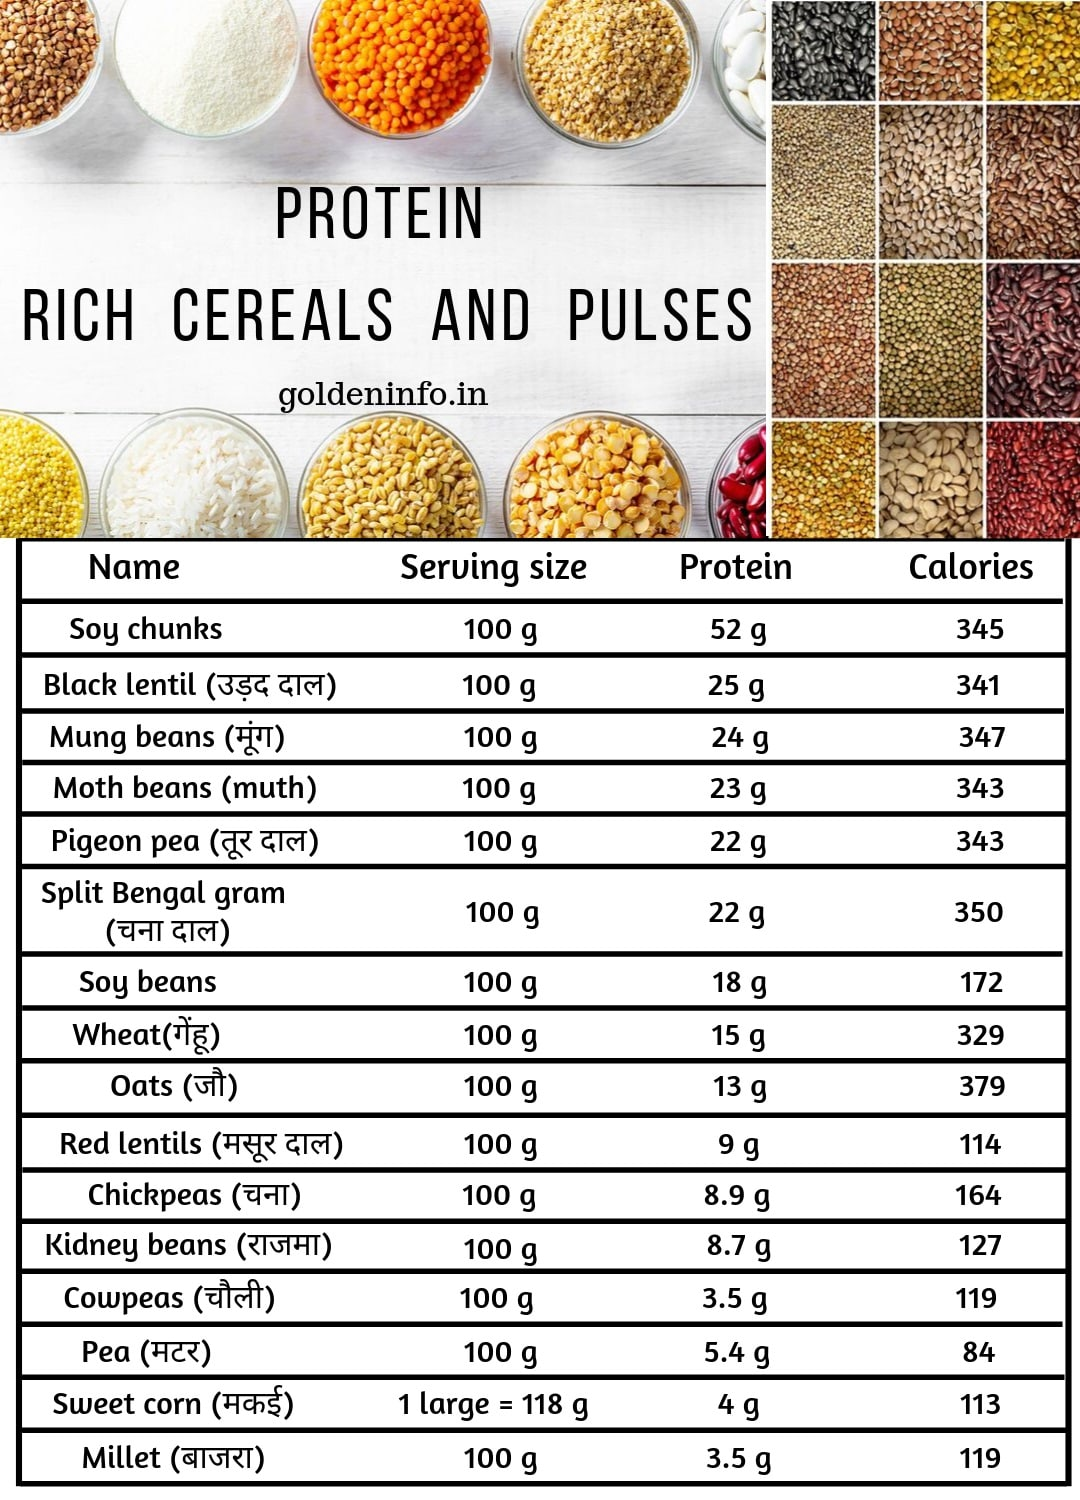 Protein rich cereals and pulses in India : Hindi